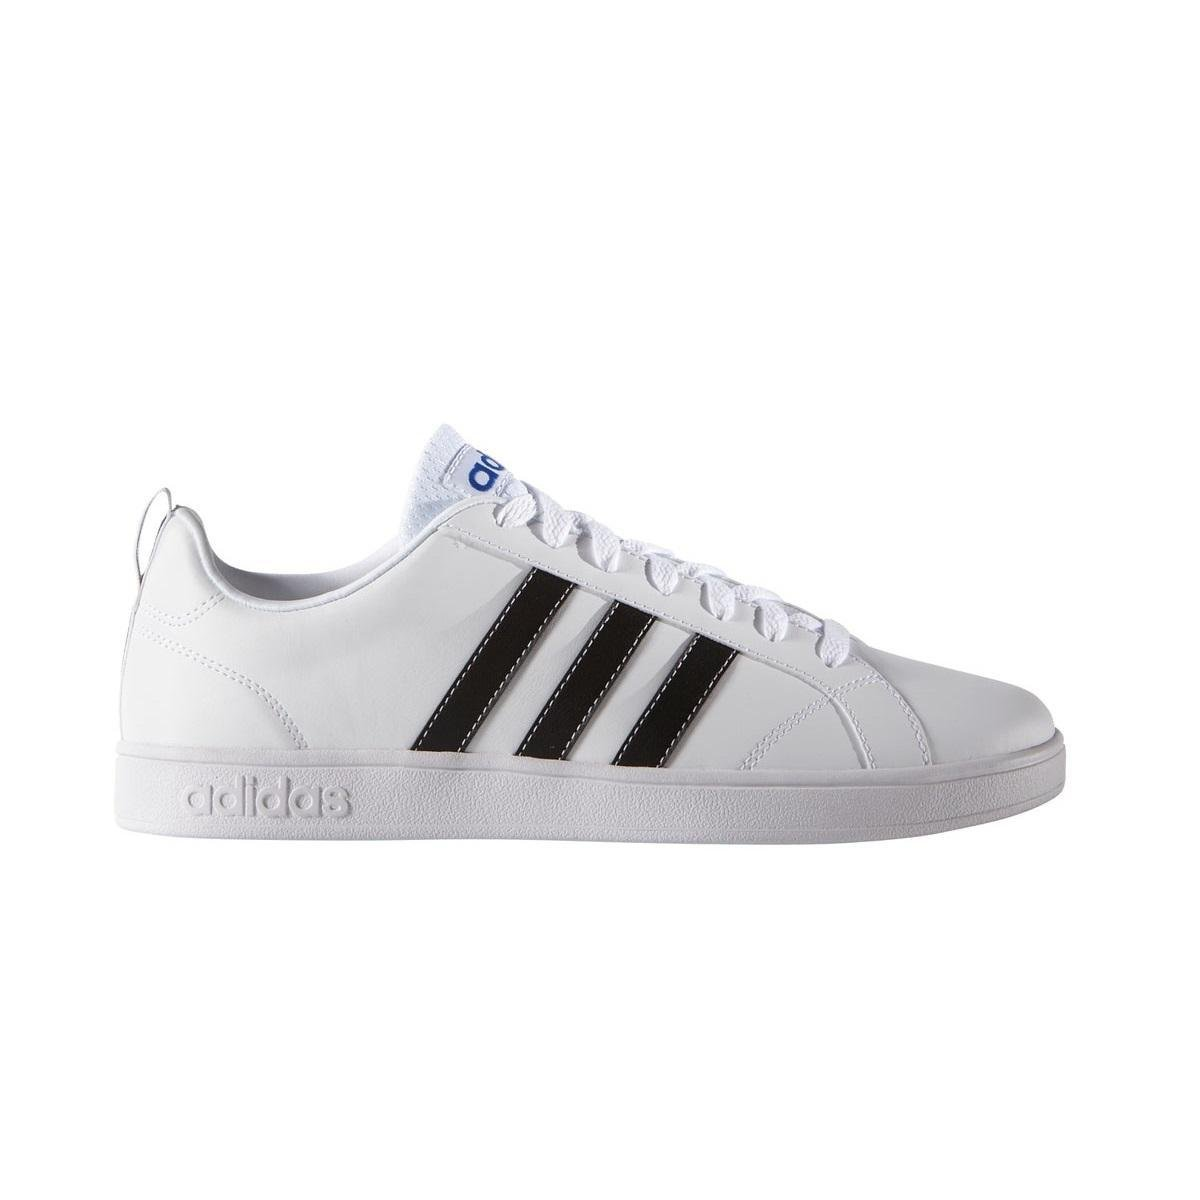 great look quality great look Tênis Adidas Advantage Vs - Branco